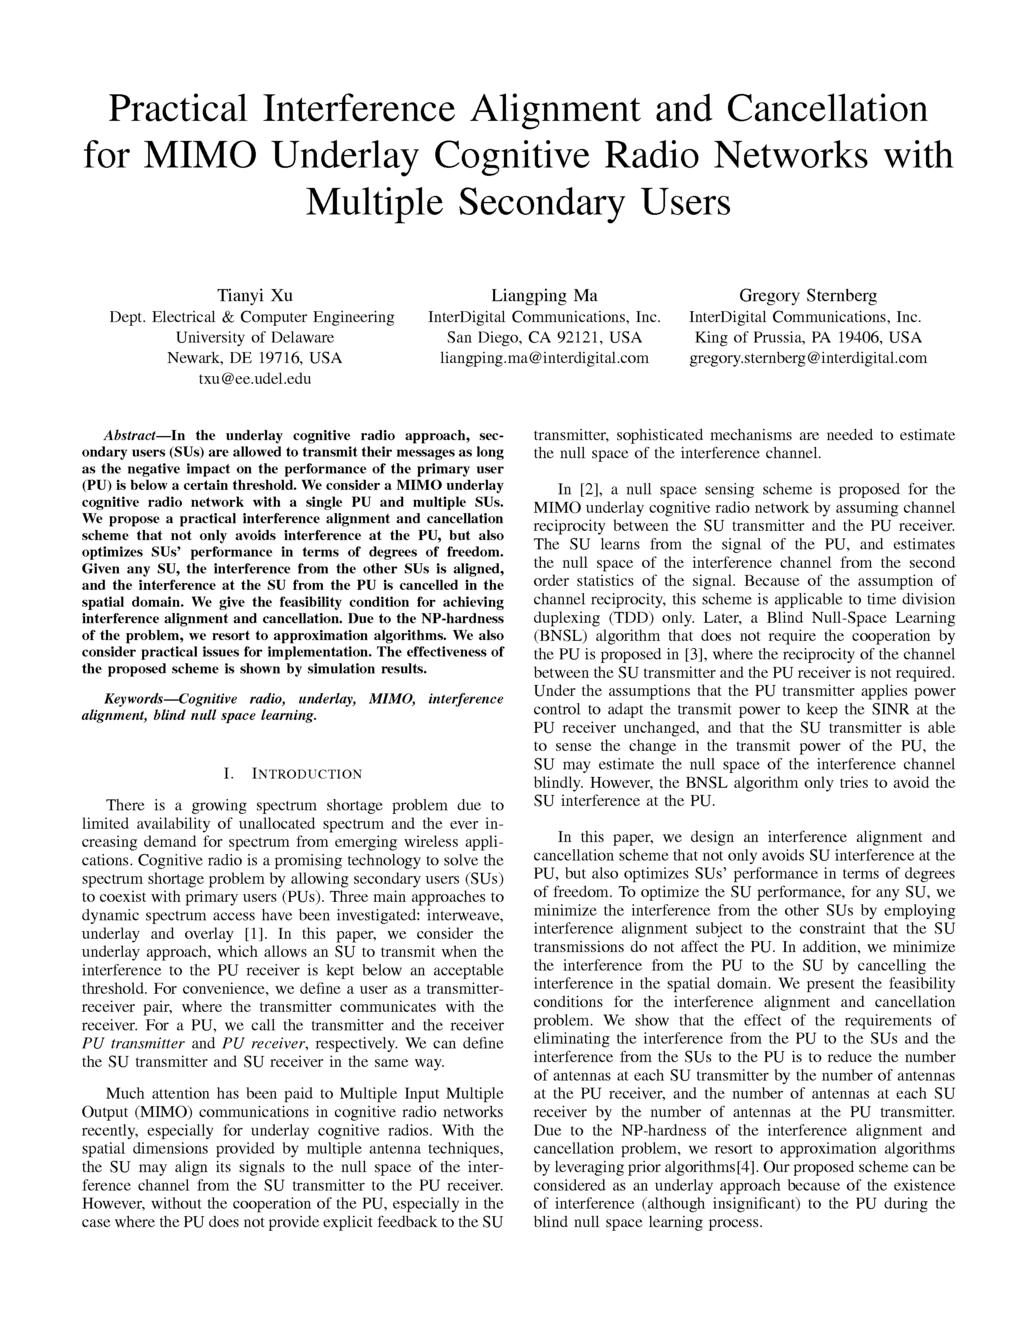 mimo research papers History early research mimo is often traced back to 1970s research papers concerning multi-channel digital transmission systems and interference (crosstalk) between.